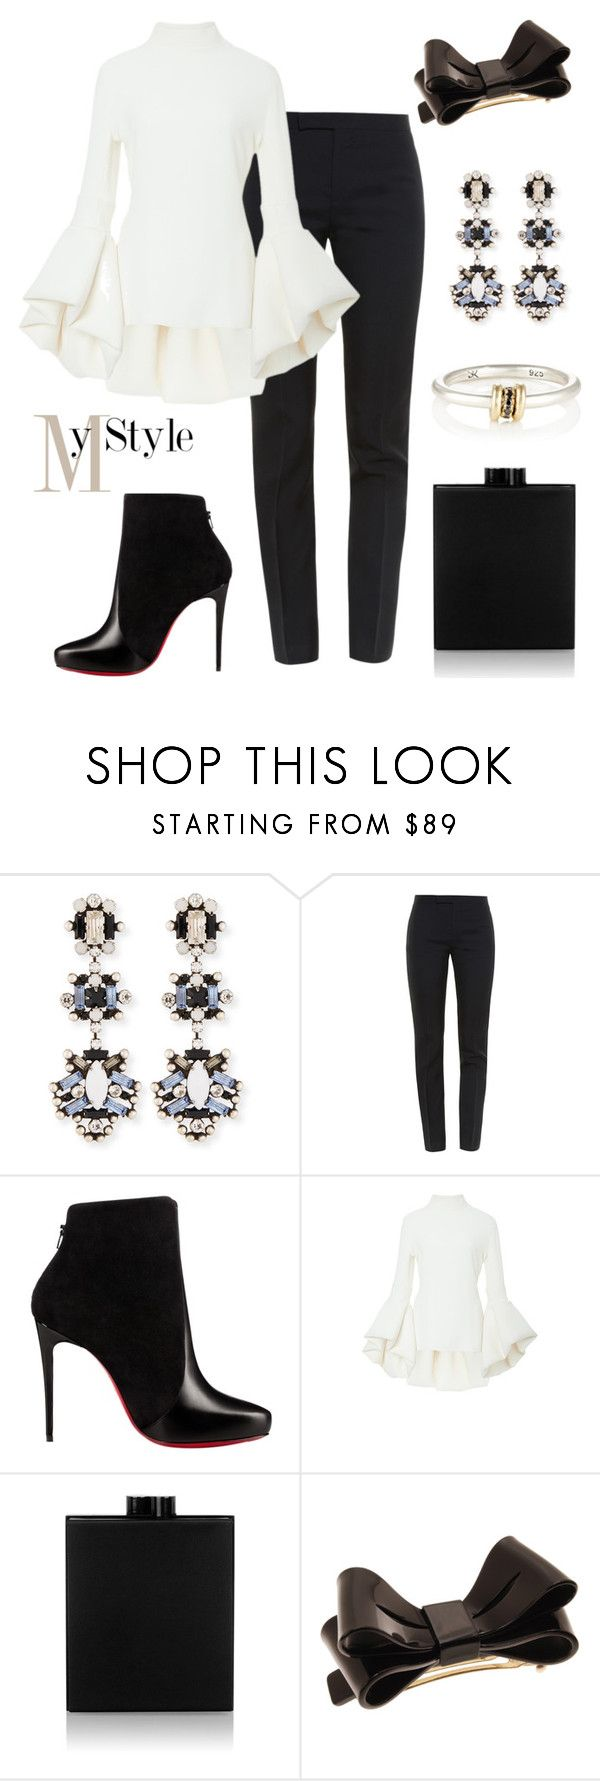 """Bow."" by gatocat ❤ liked on Polyvore featuring DANNIJO, Yves Saint Laurent, Christian Louboutin, Brandon Maxwell, Victoria Beckham, L. Erickson and SPINELLI KILCOLLIN"